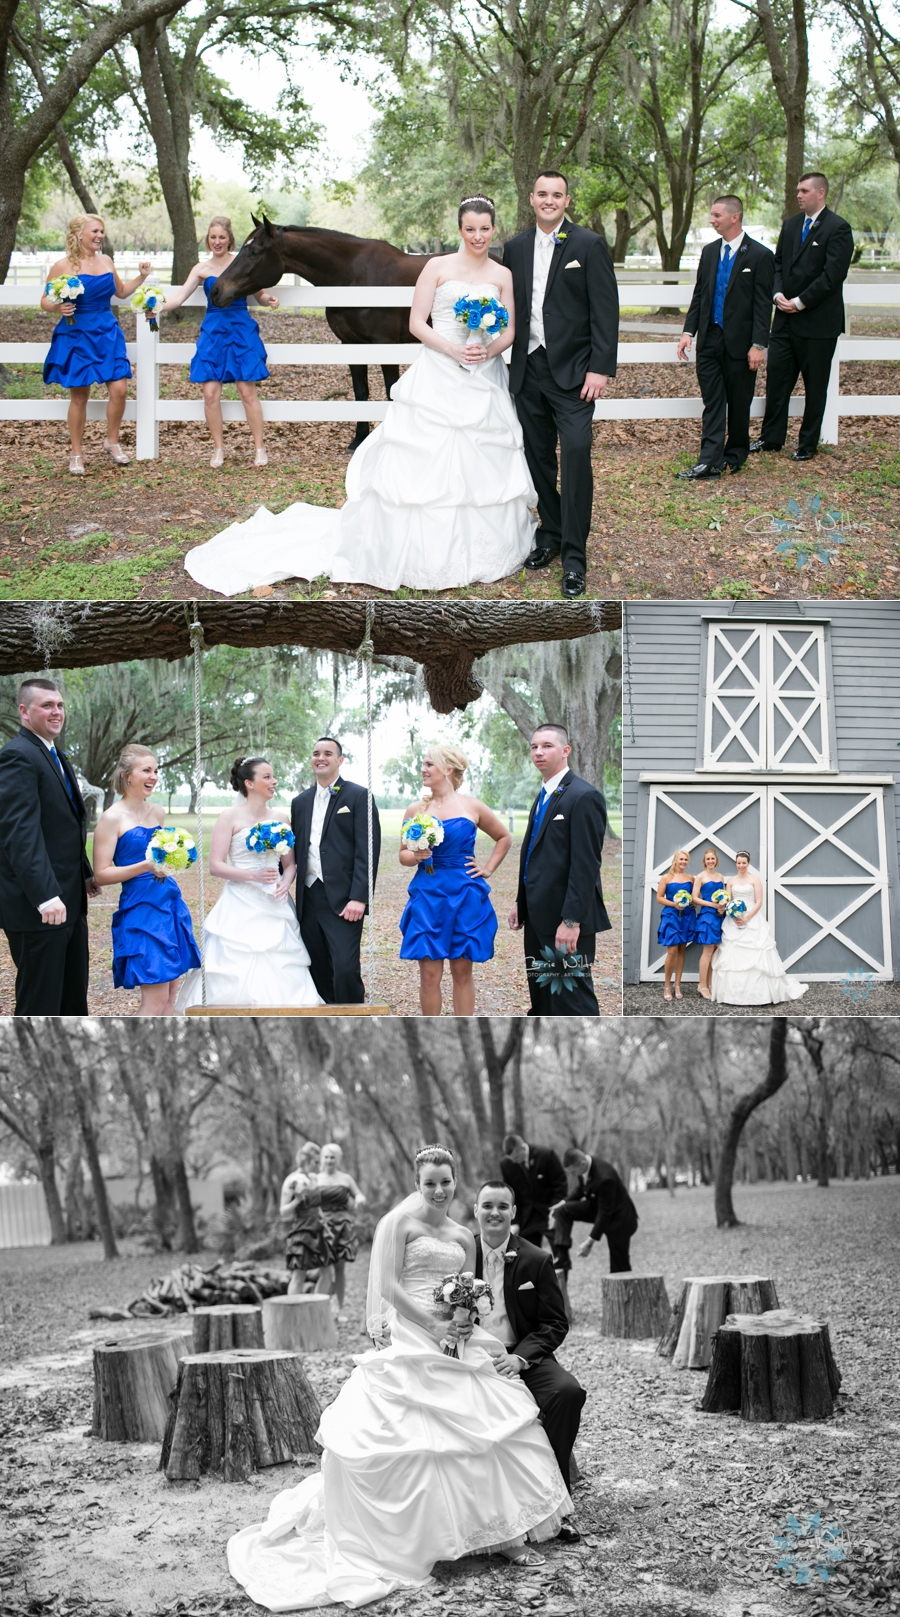 4_20_13 Lange Farm Wedding_0005.jpg